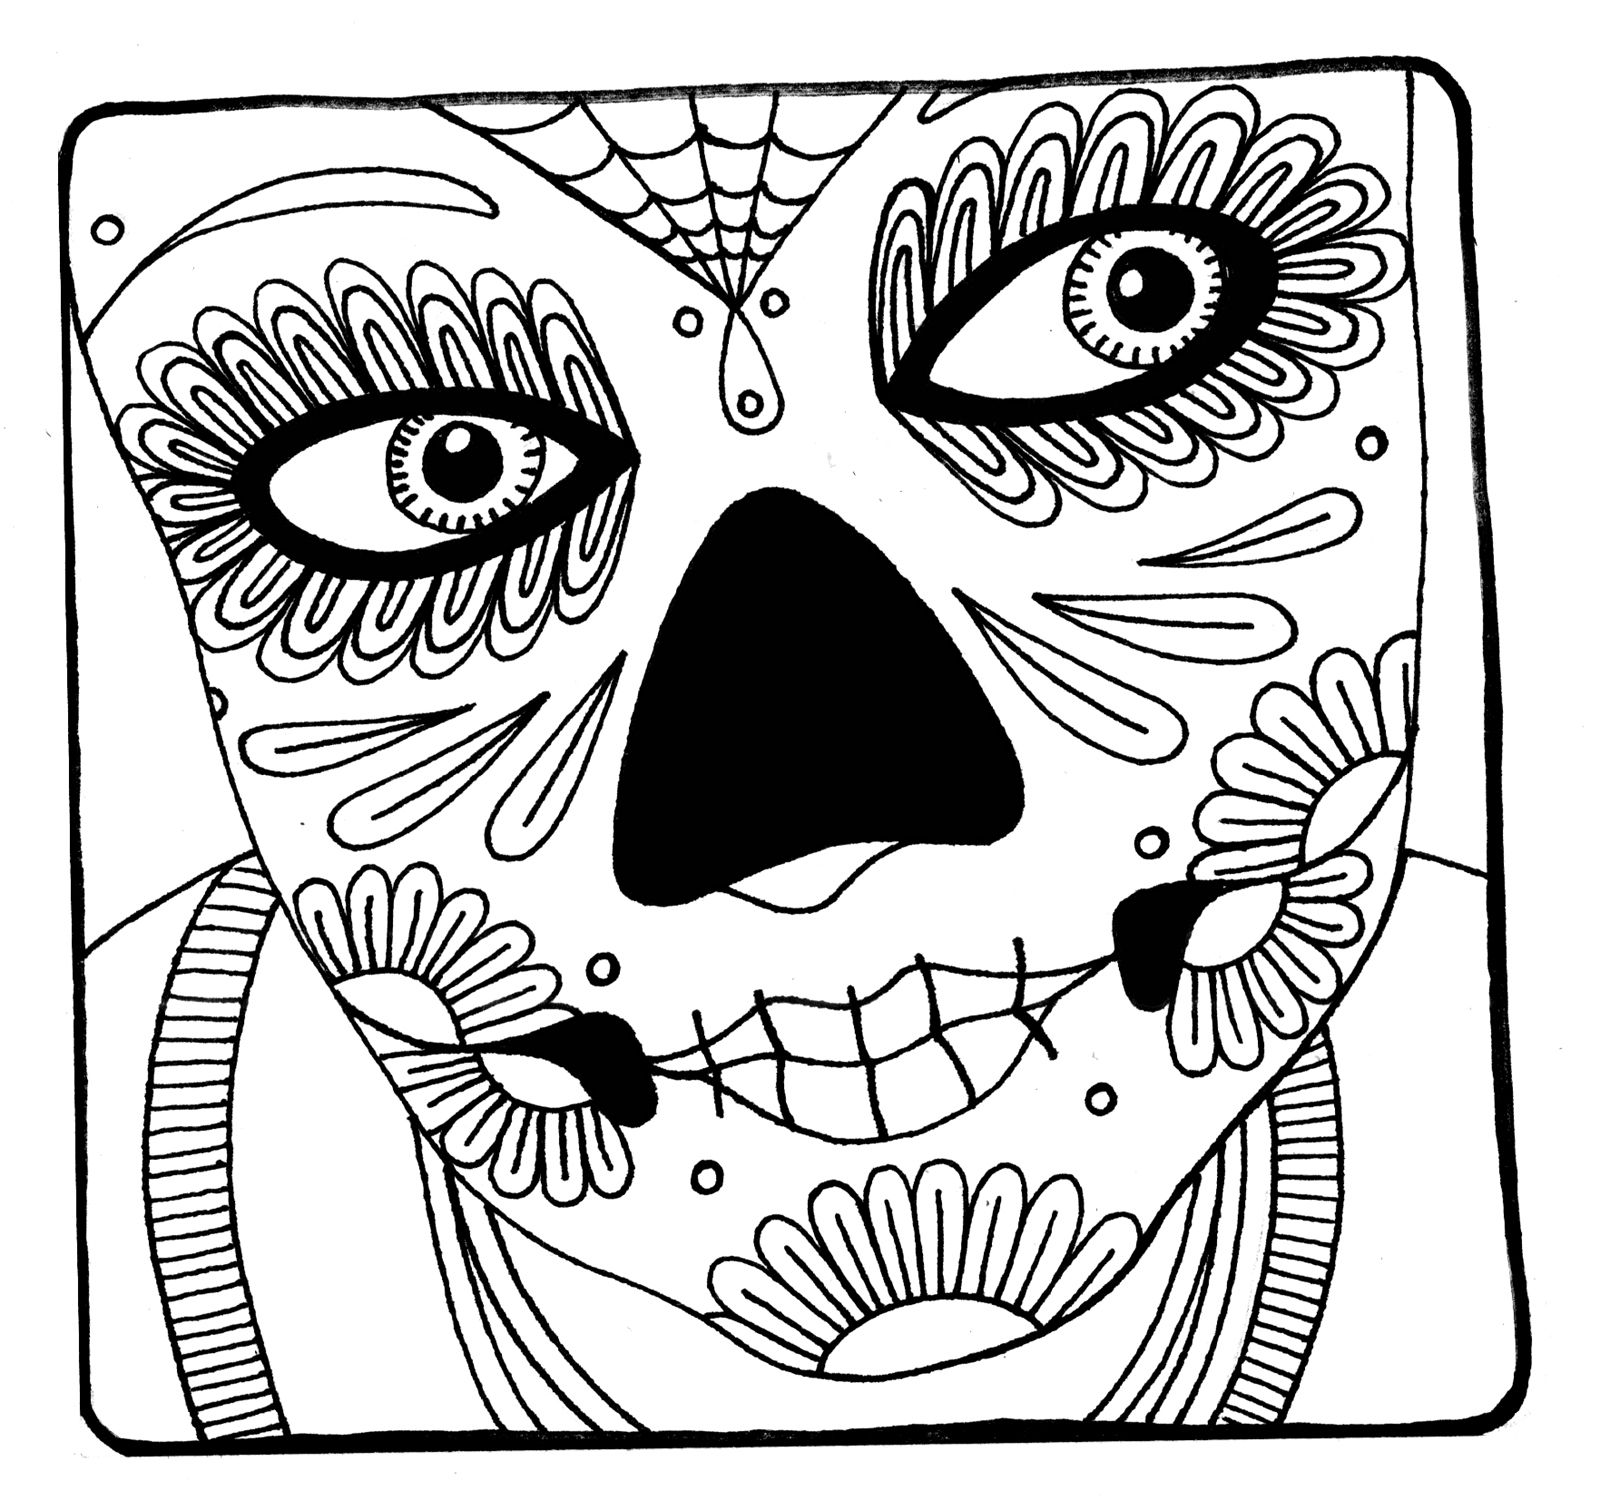 Coloring pages girly - Halloween Printable Dia De Los Muertos Sugar Skull Coloring Page Could Be A Cute Tattoo